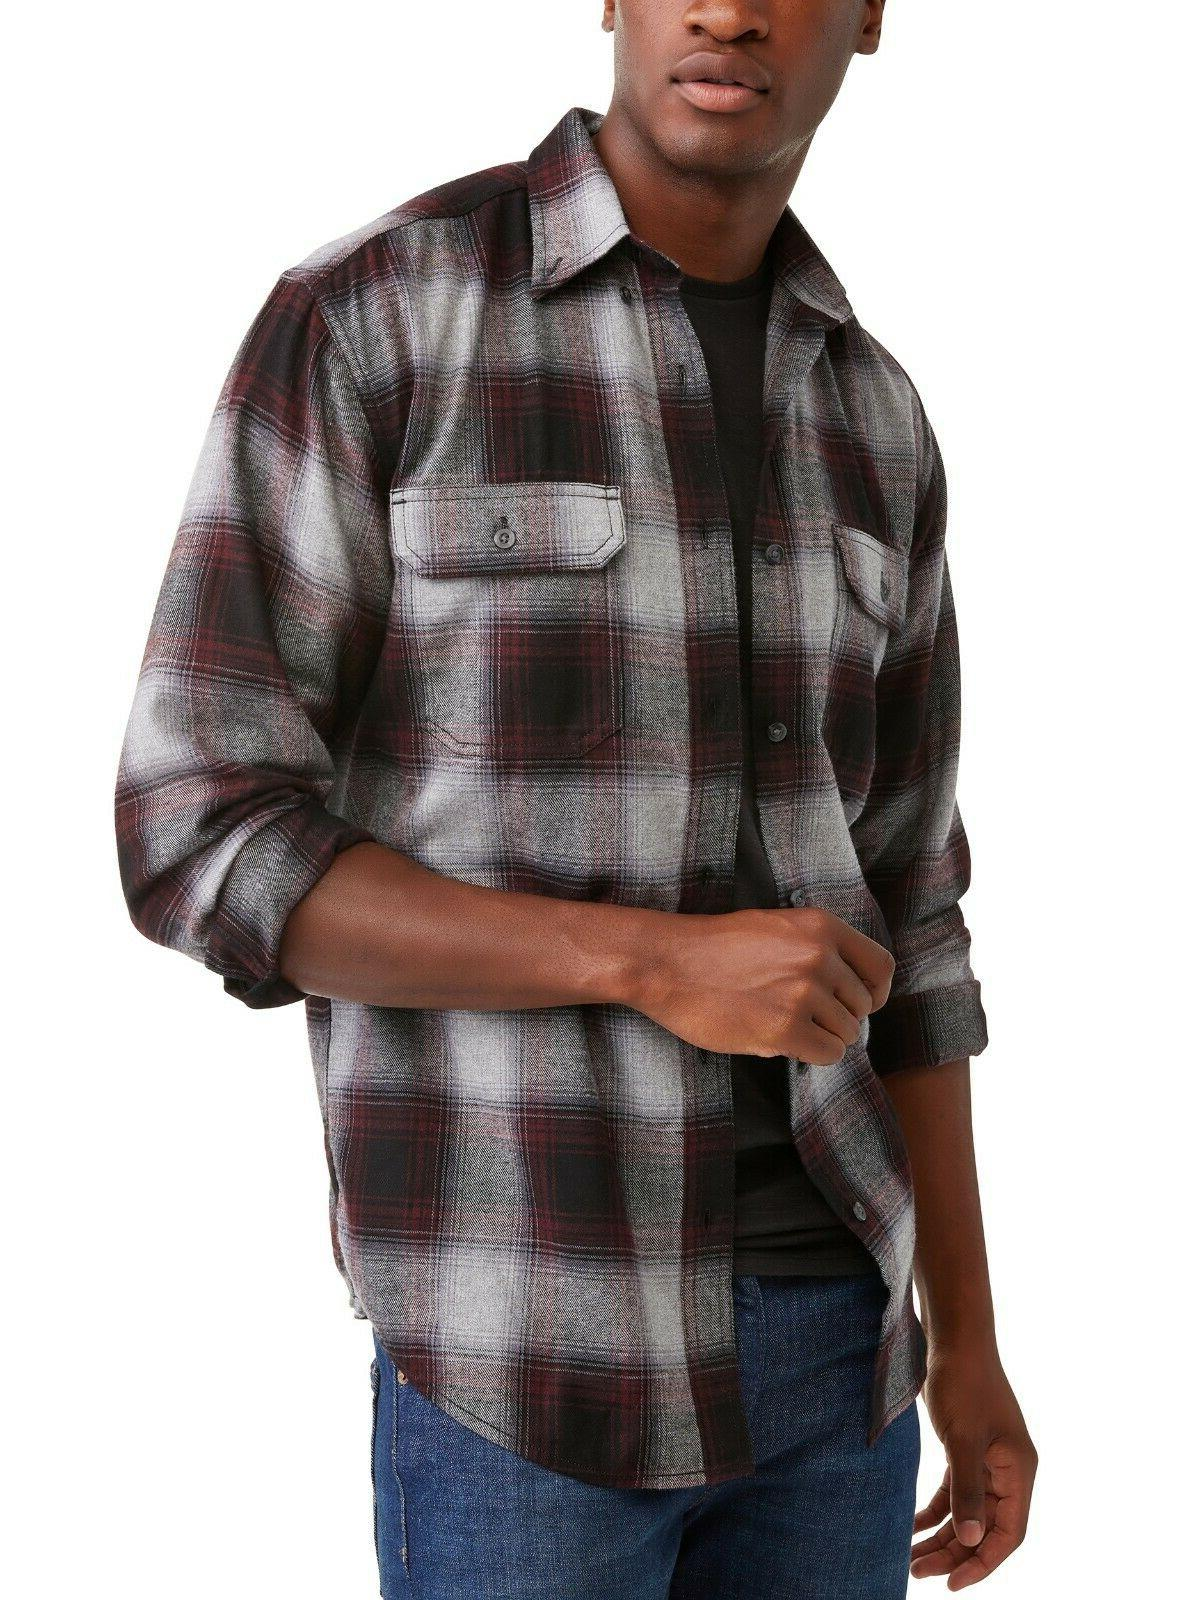 George Long Flannel Gray/Maroon M